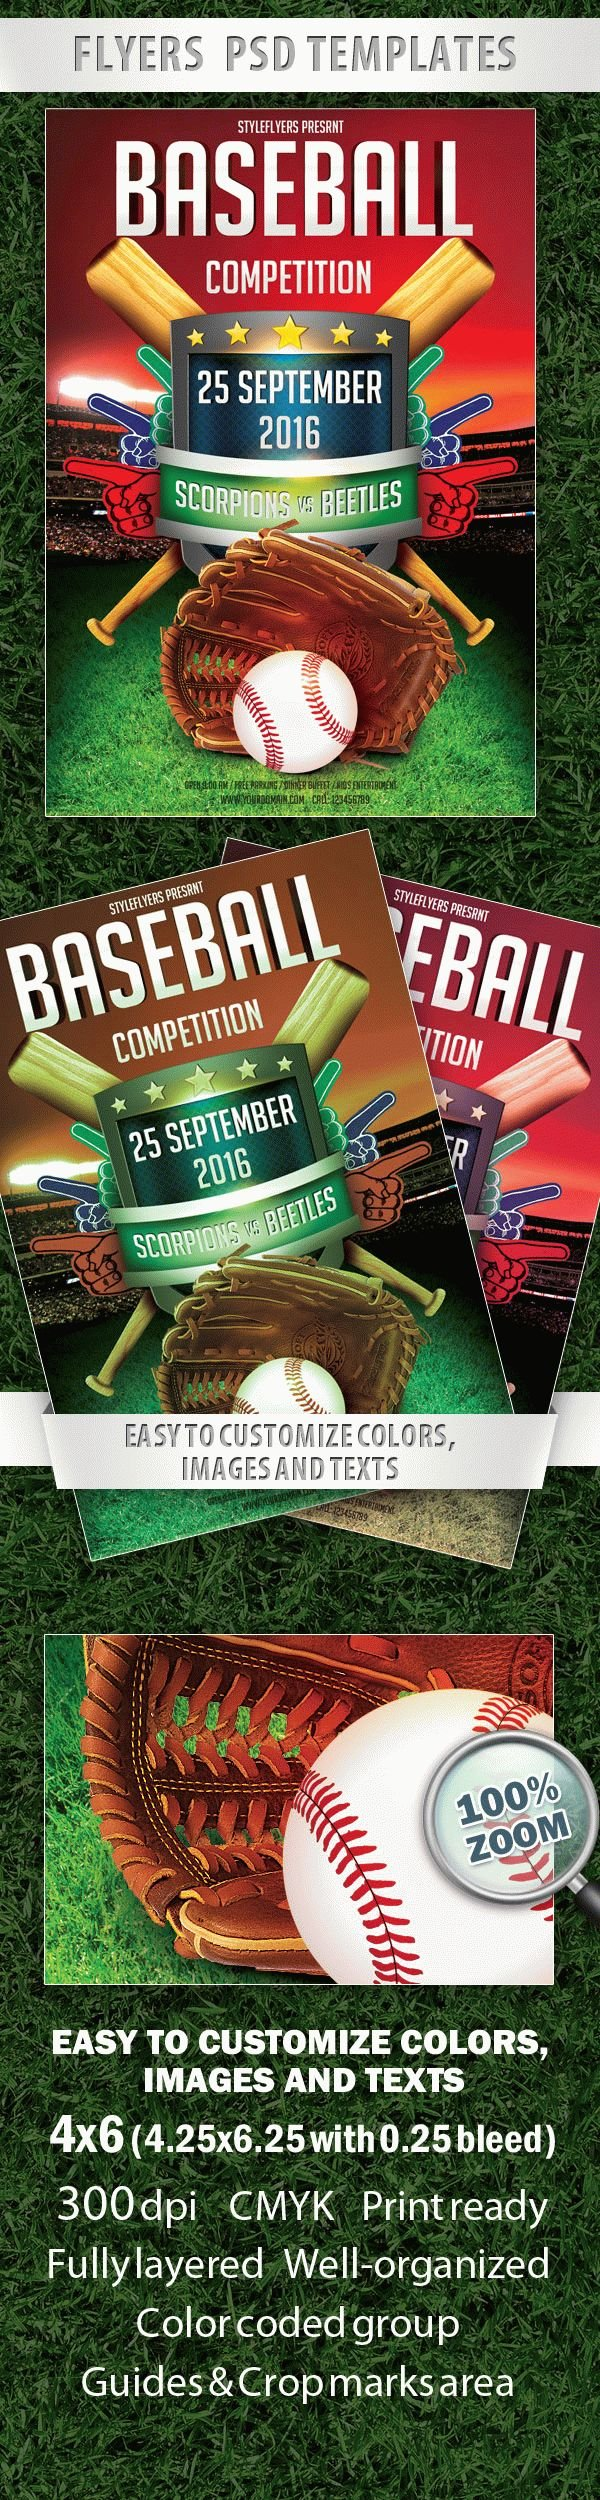 Baseball Competition Flyer